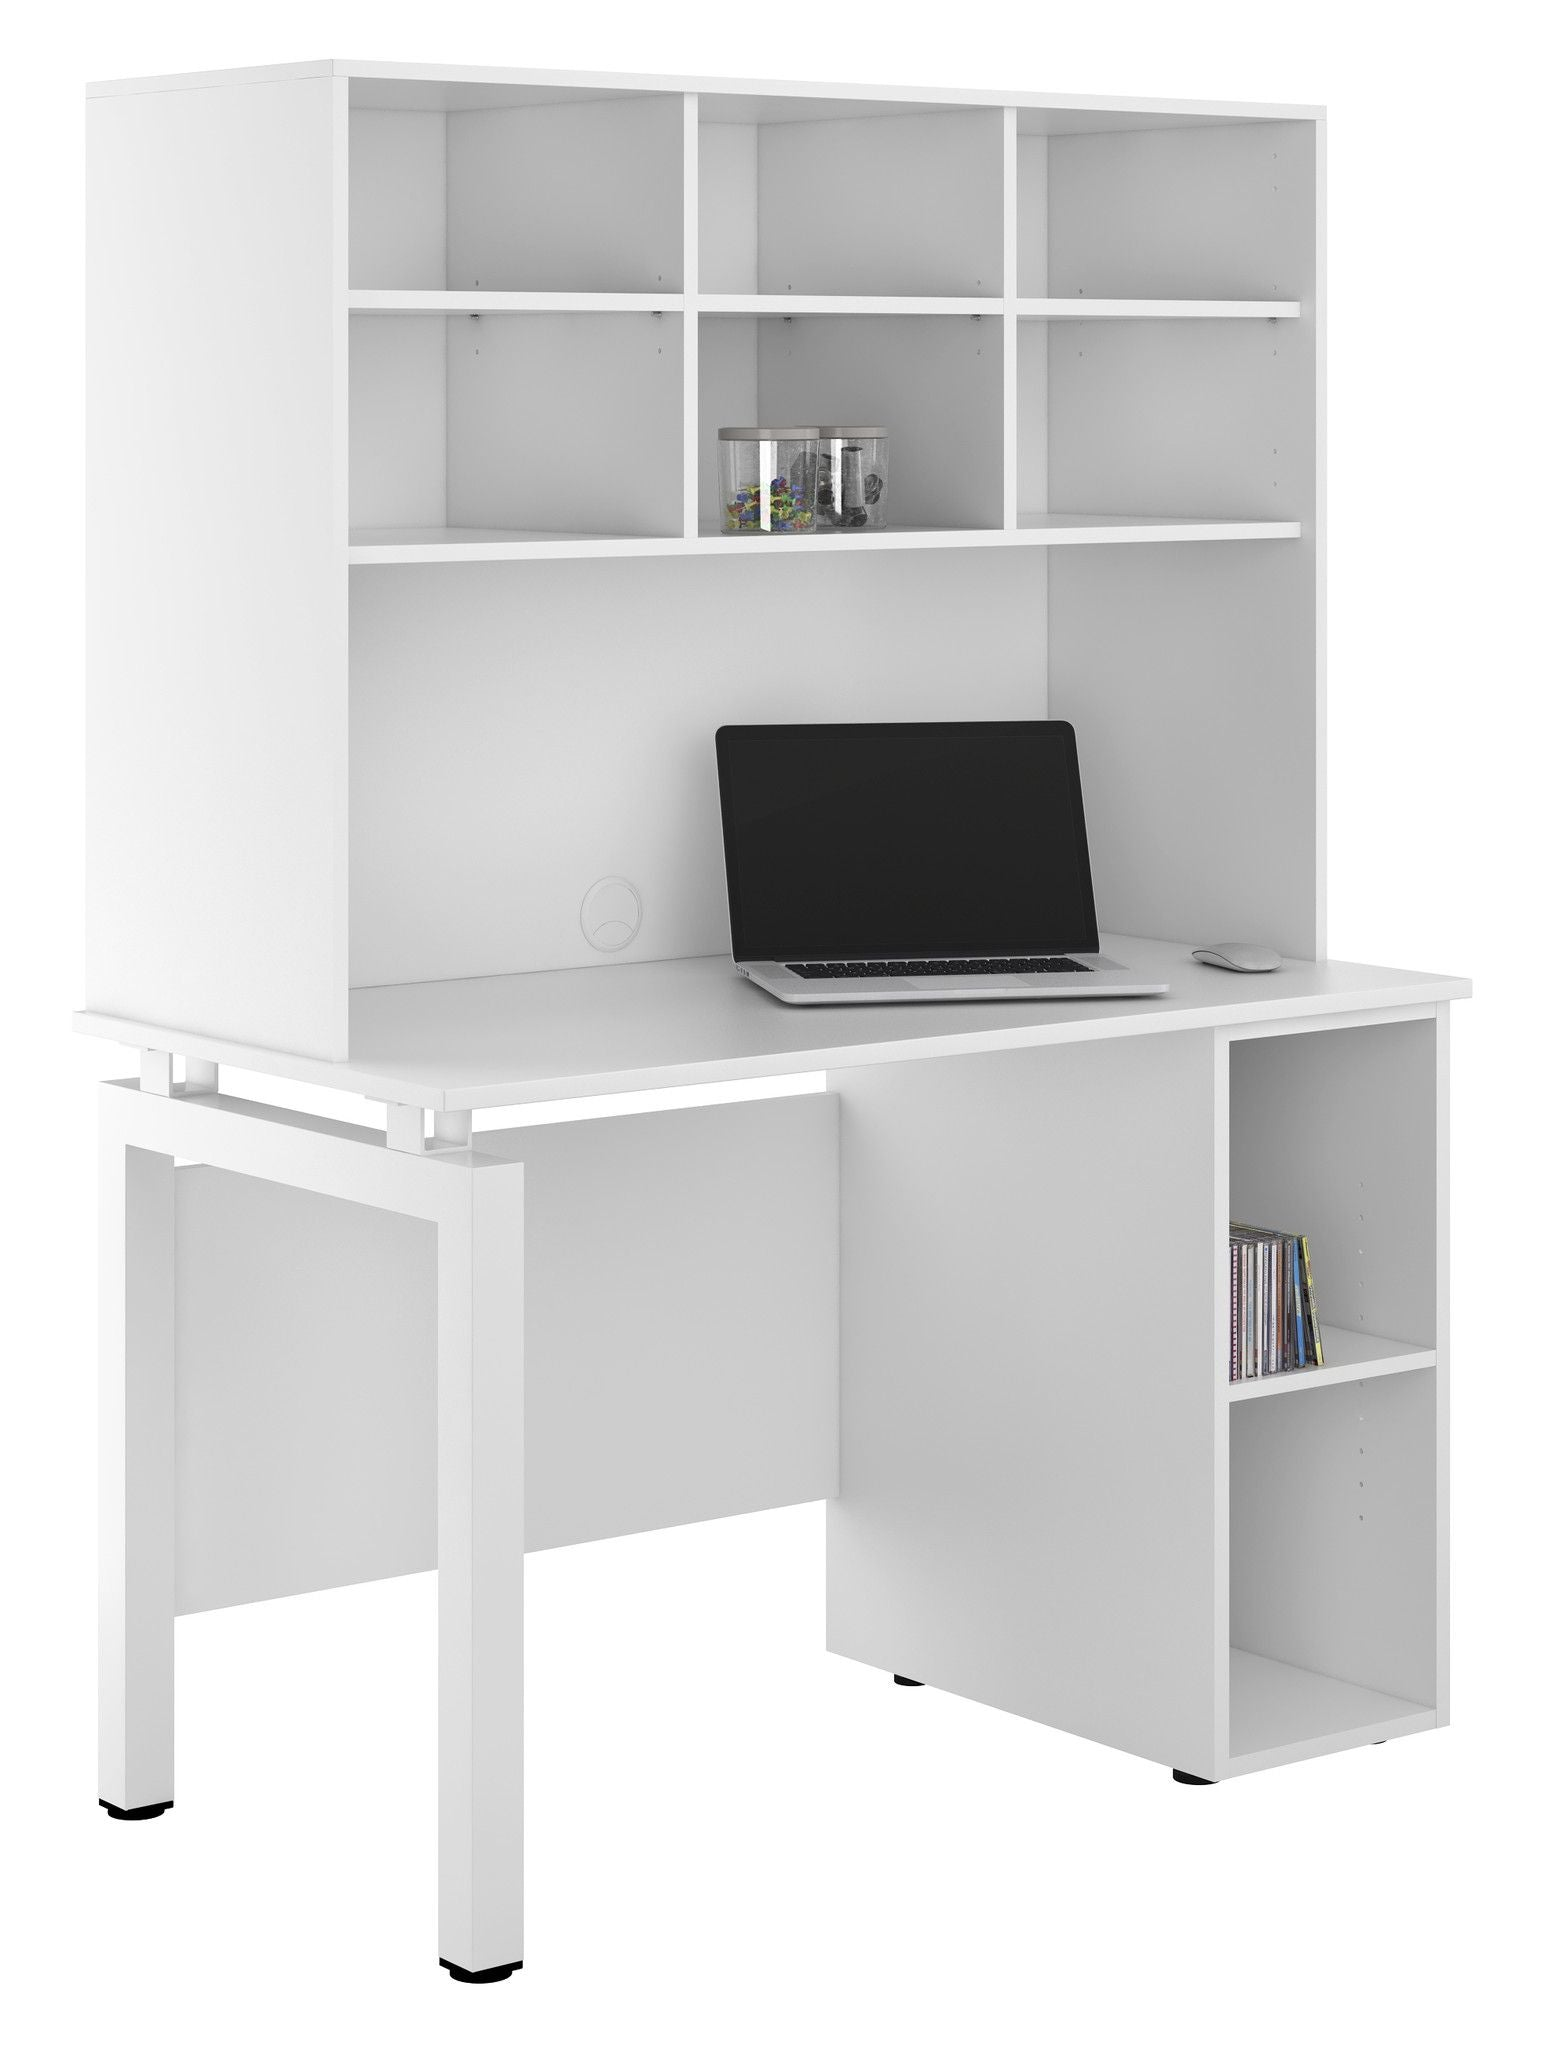 outlet store d04b8 b6499 UCLIC White Desk with Bench Legs + Base Unit + Overhead Storage